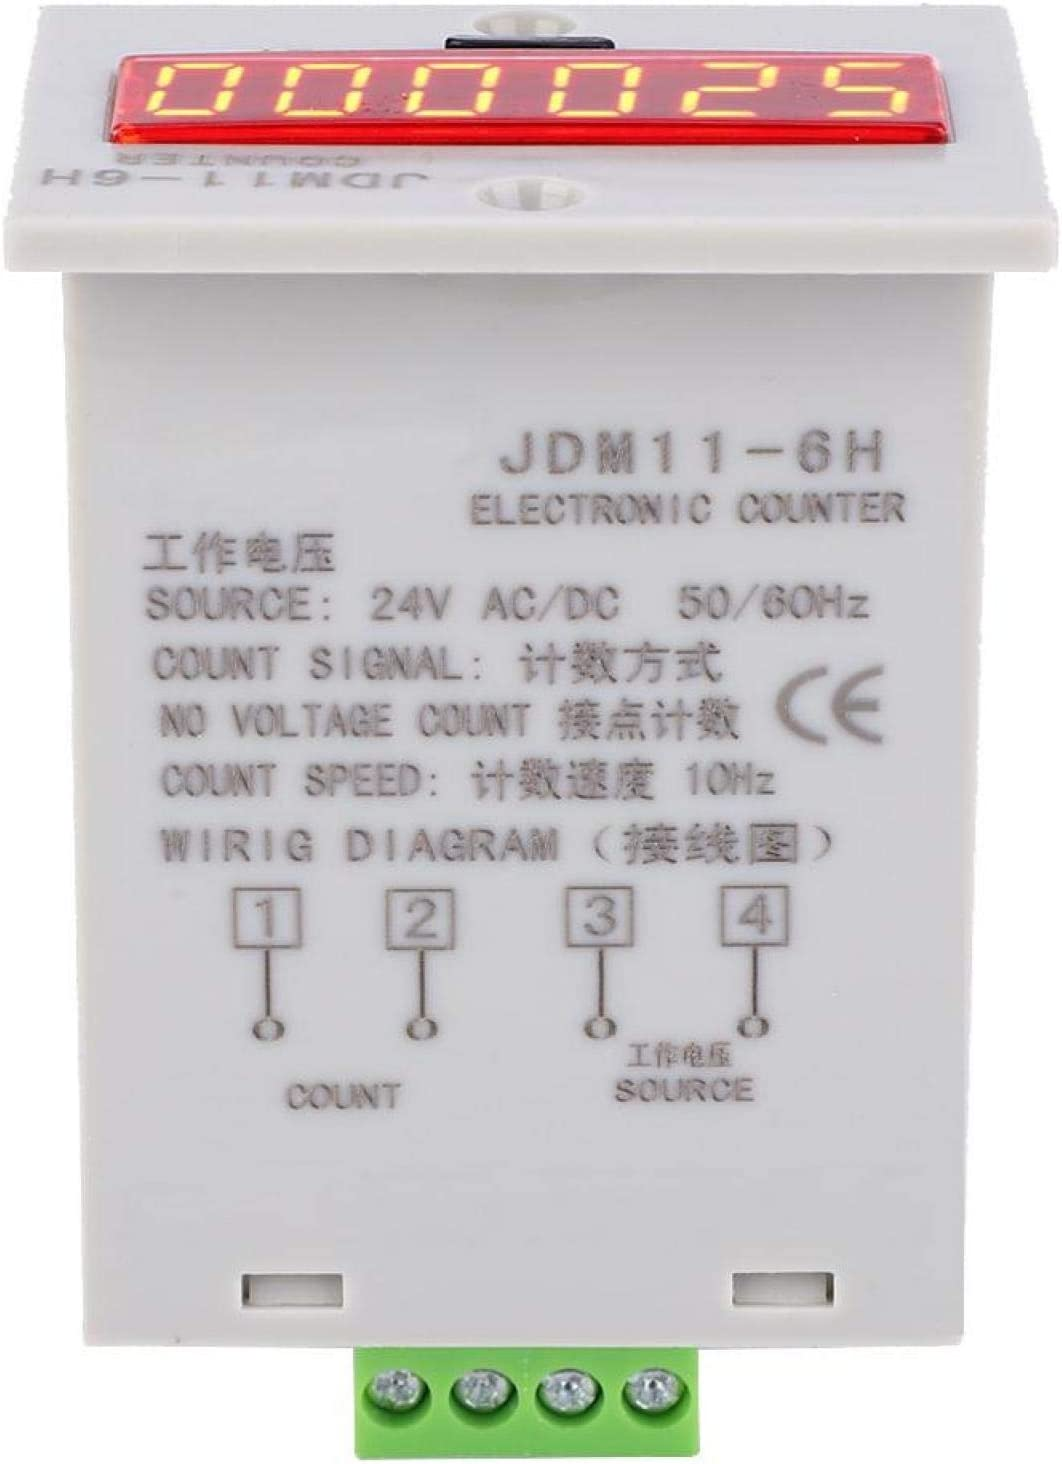 JDM11-6H No Voltage Counter 6 online shop Relay Popular brand in the world Digits Elect